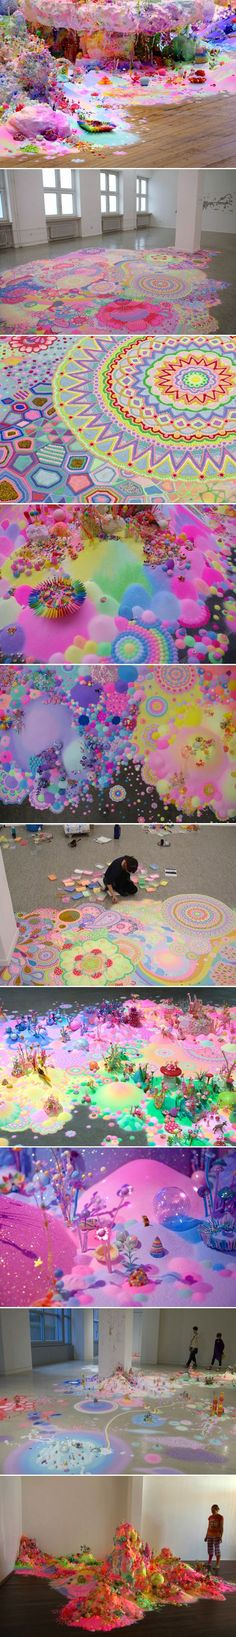 Art Made Using Sugar, Glitter and Small Toys - So Cute!!! http://www.pipandpop.com.au